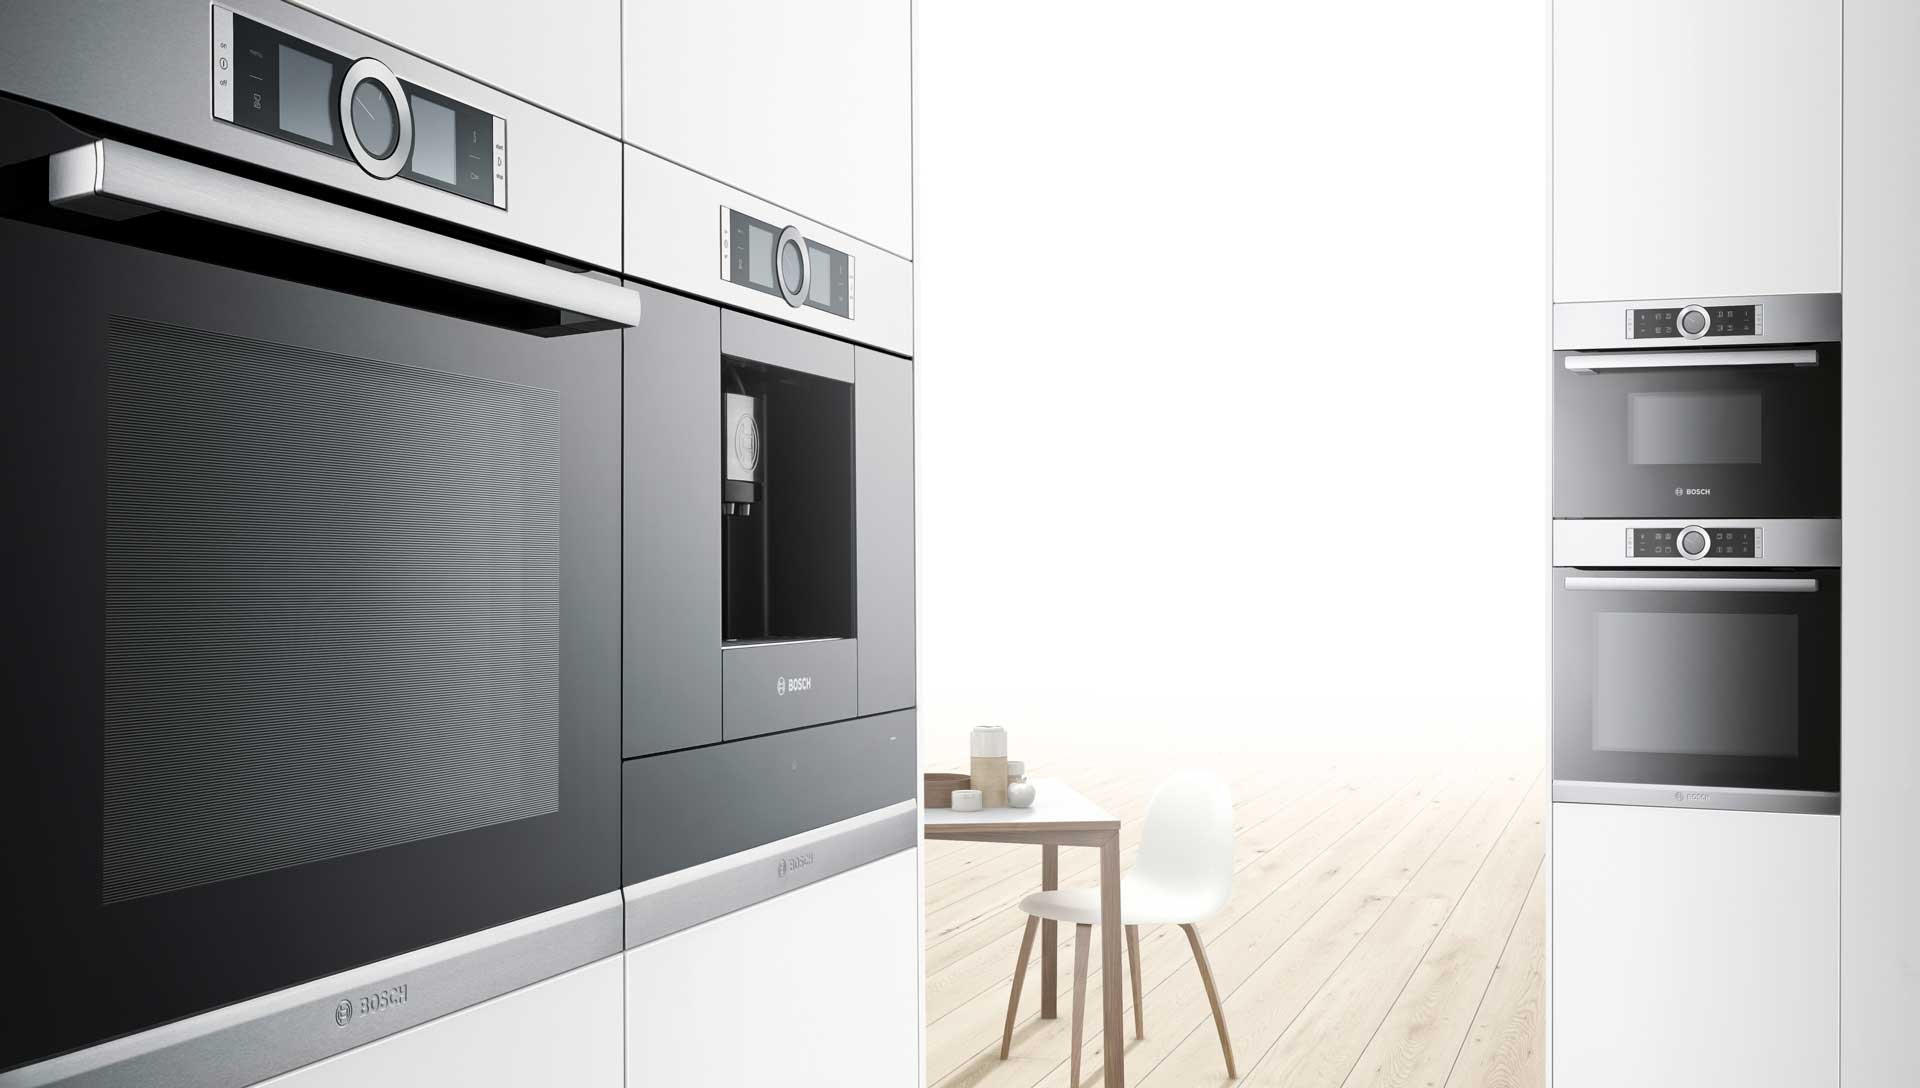 Kitchens Leeds, Traditional or Contemporary - New Wave Kitchens